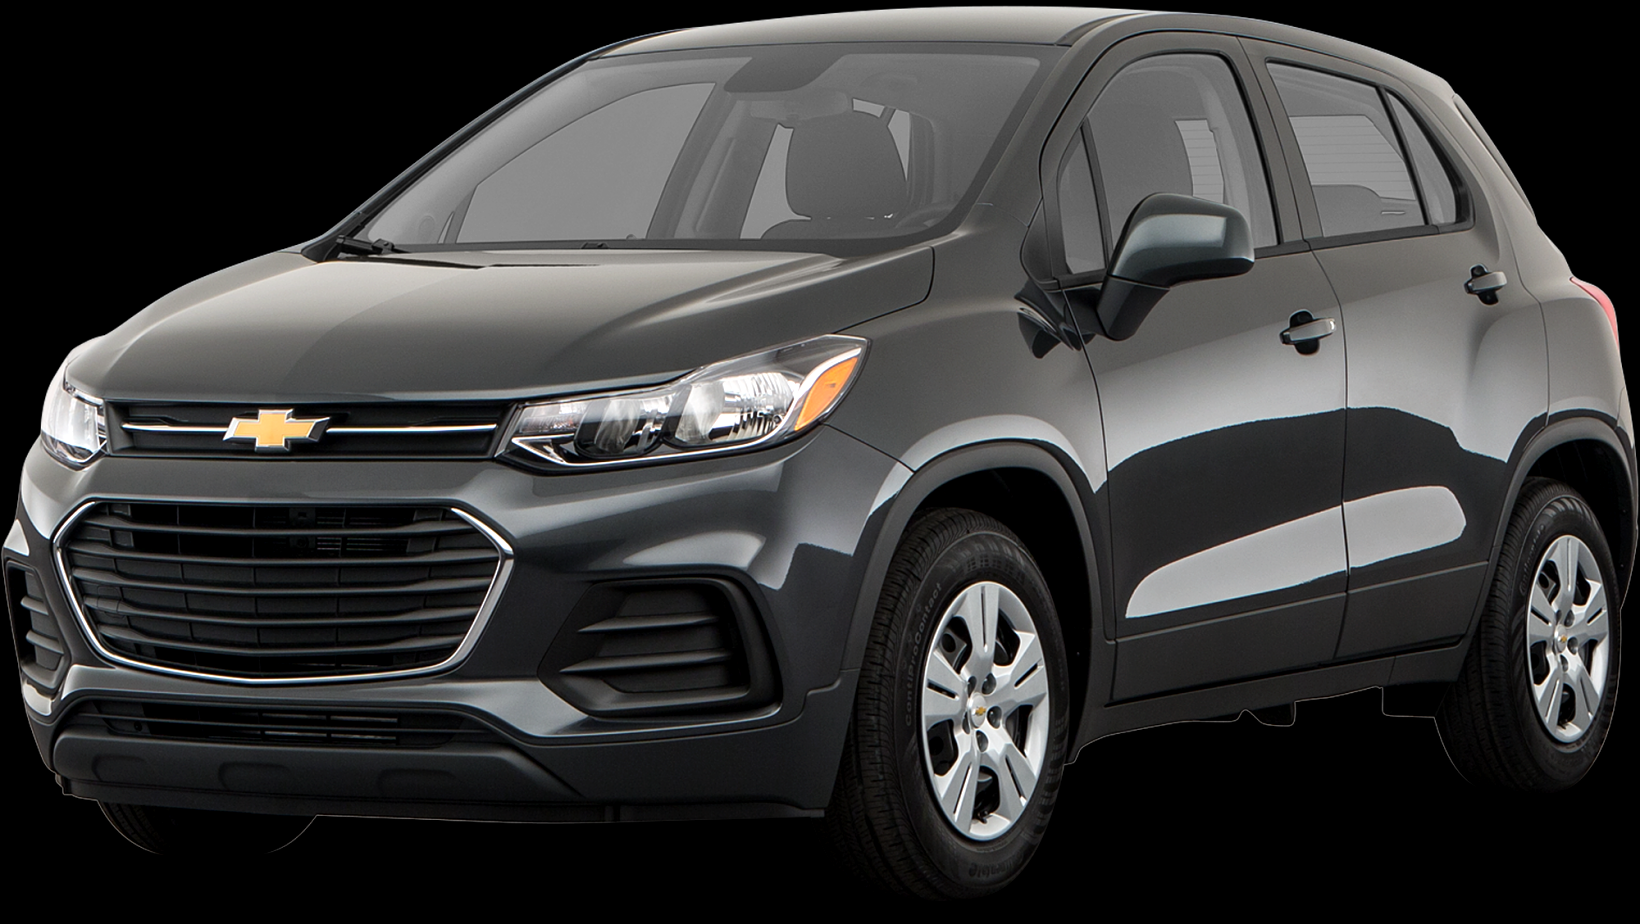 2020 chevrolet trax Price and Release date